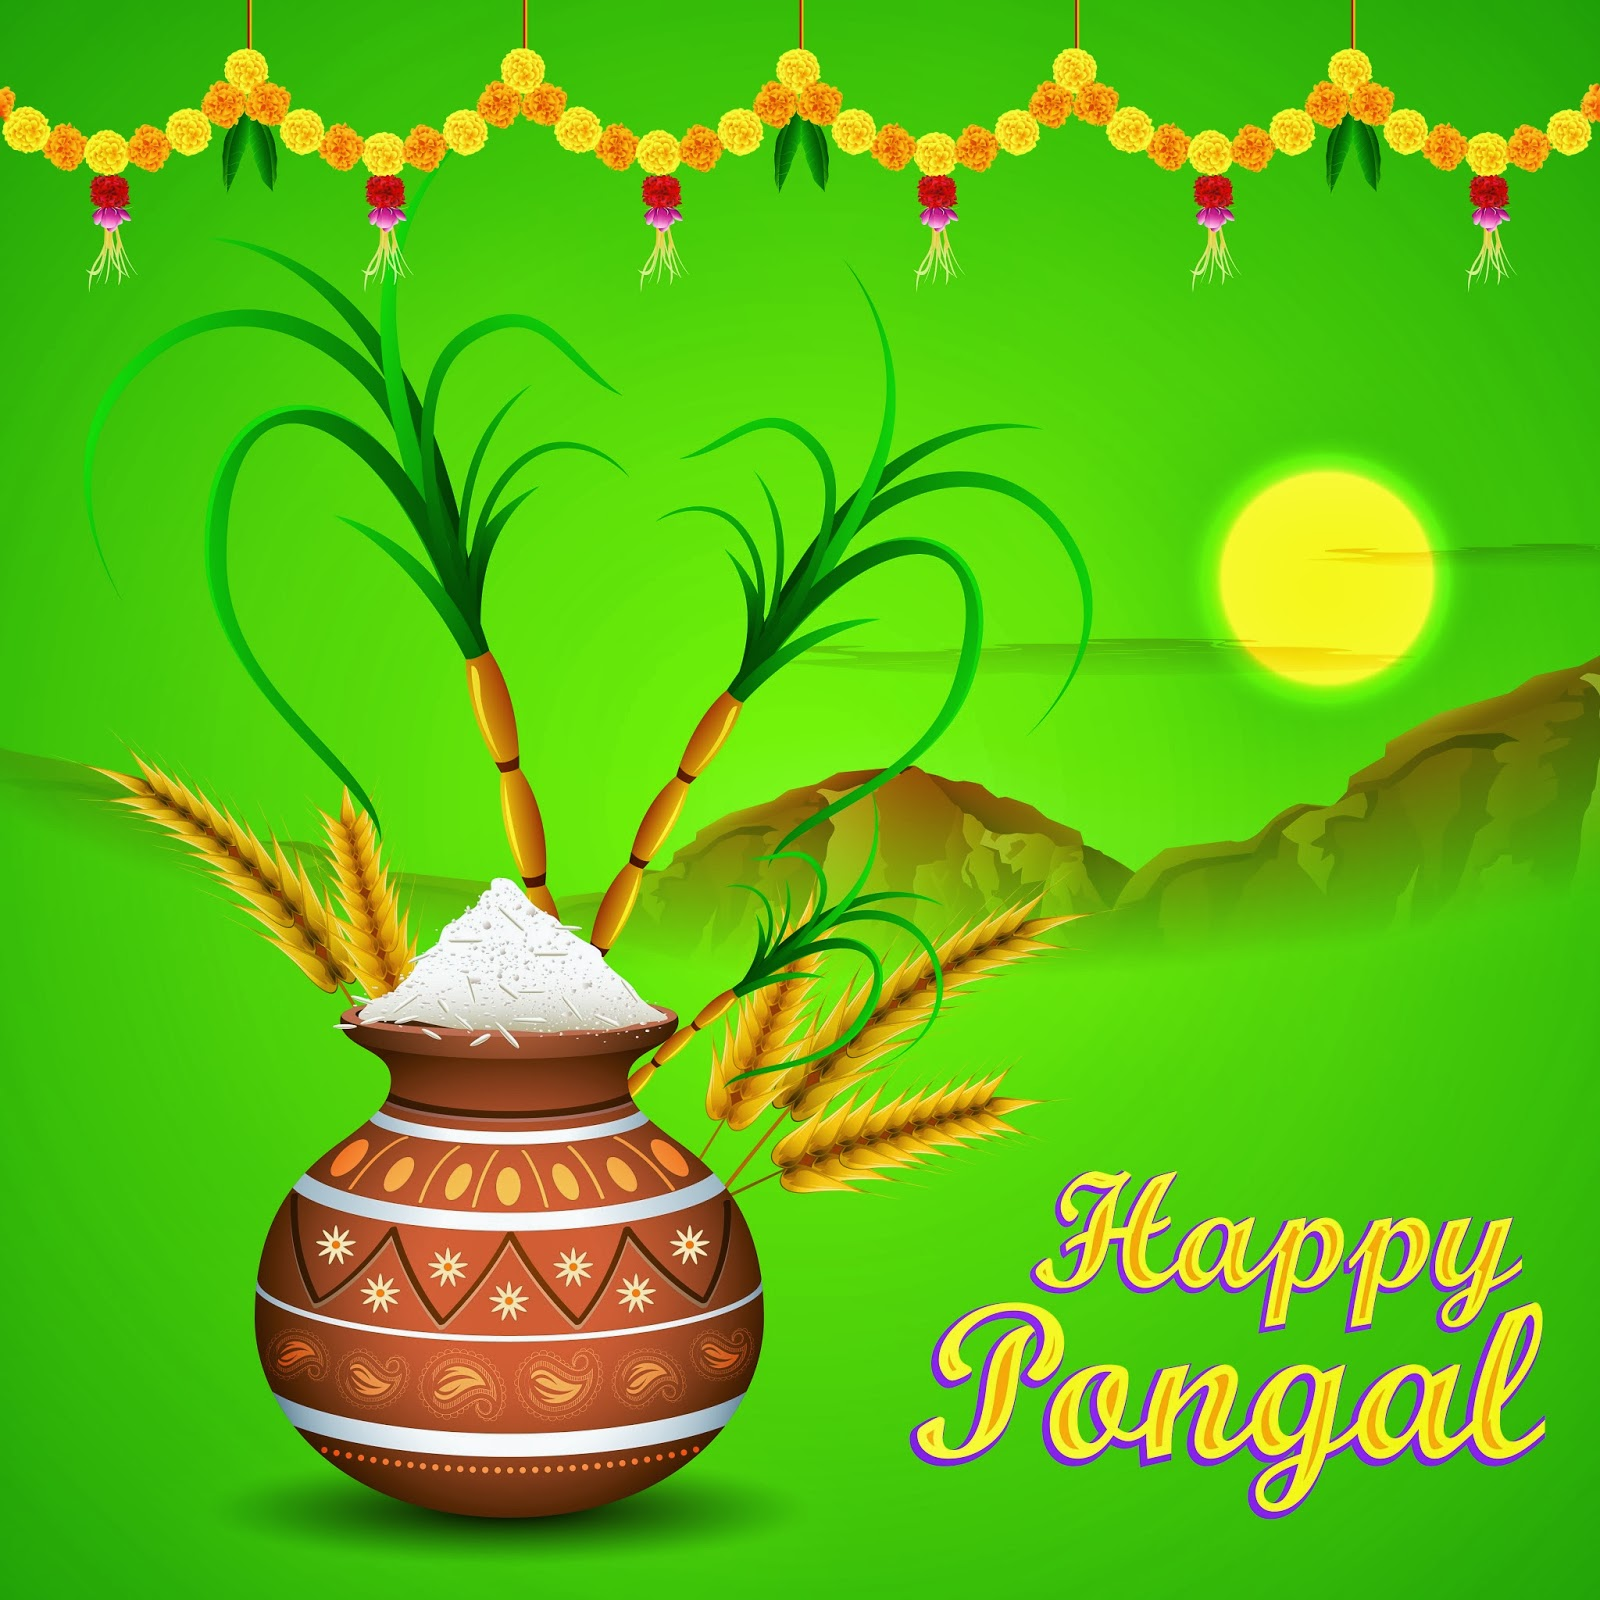 happy-pongal-best-image-collection-free-downloads-naveengfx.com